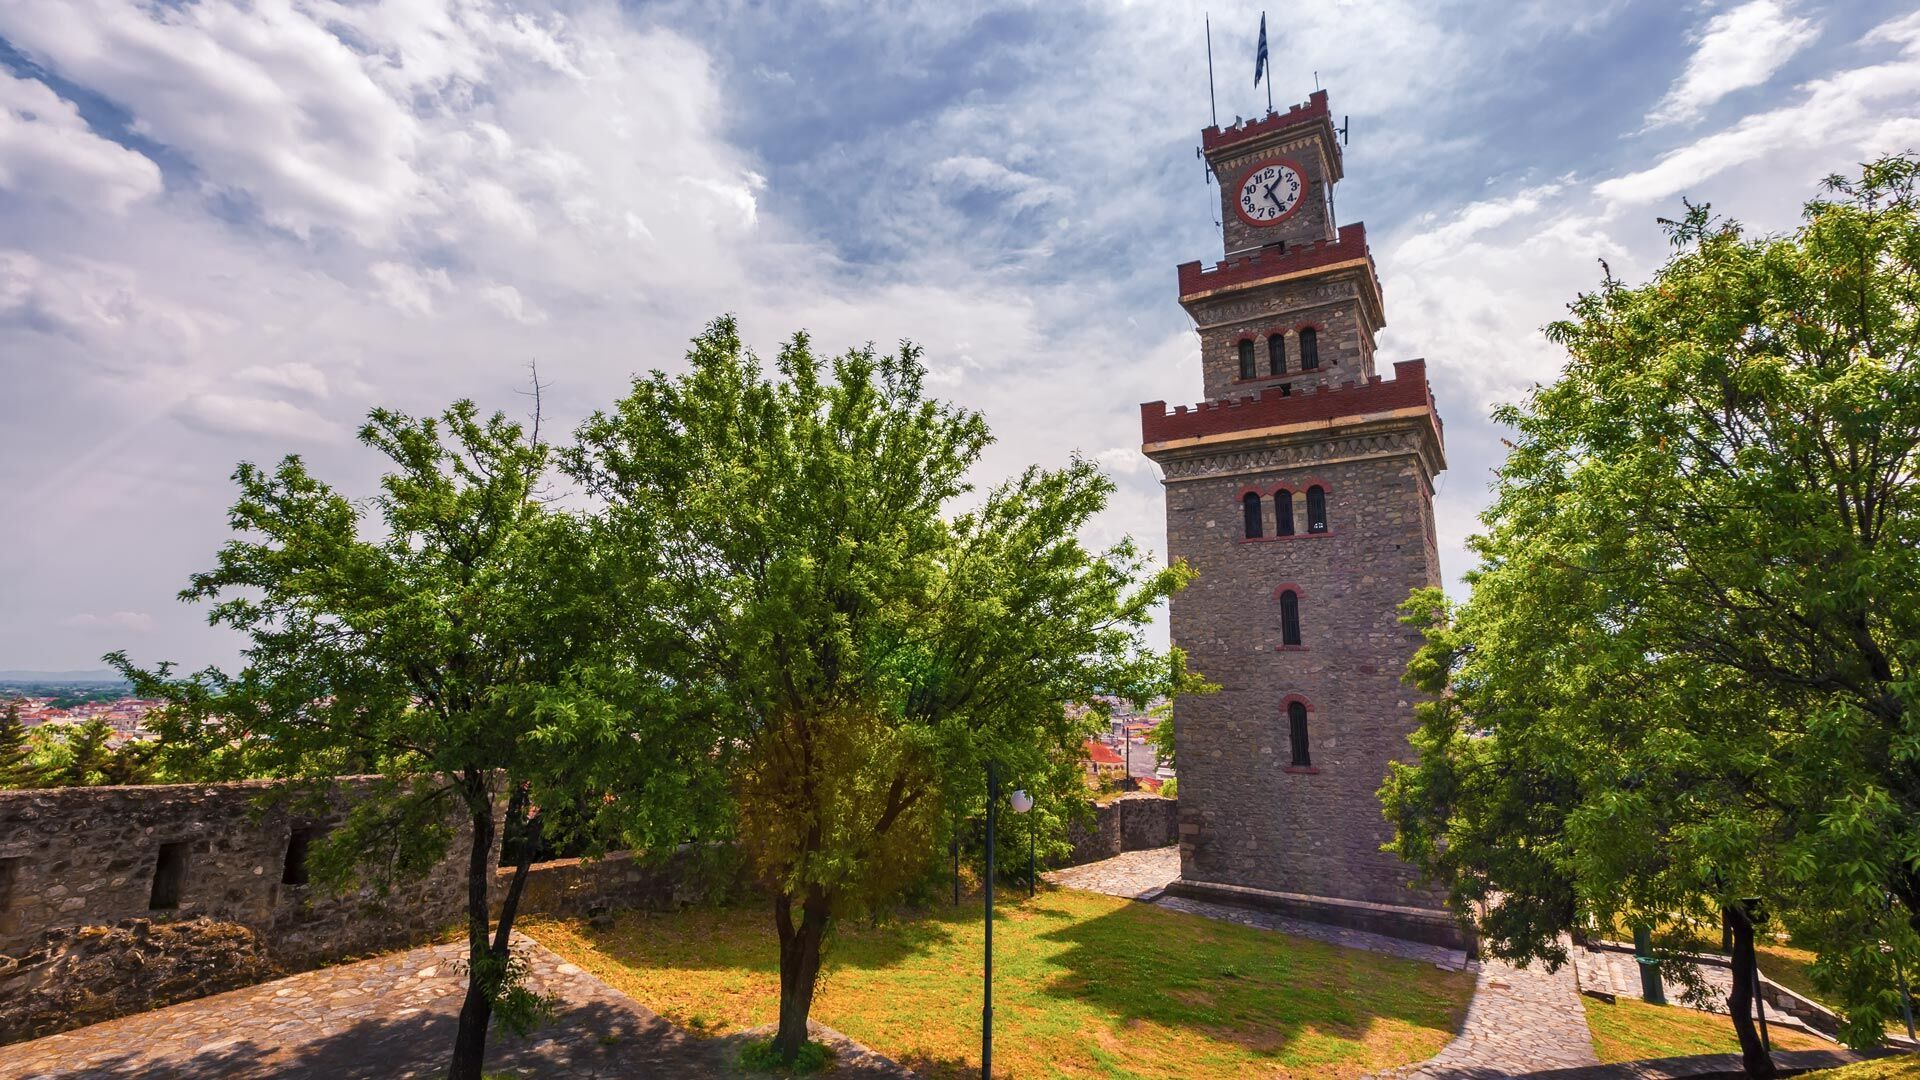 The 17th century clock tower within the medieval fortress of the old town Varousi Trikala